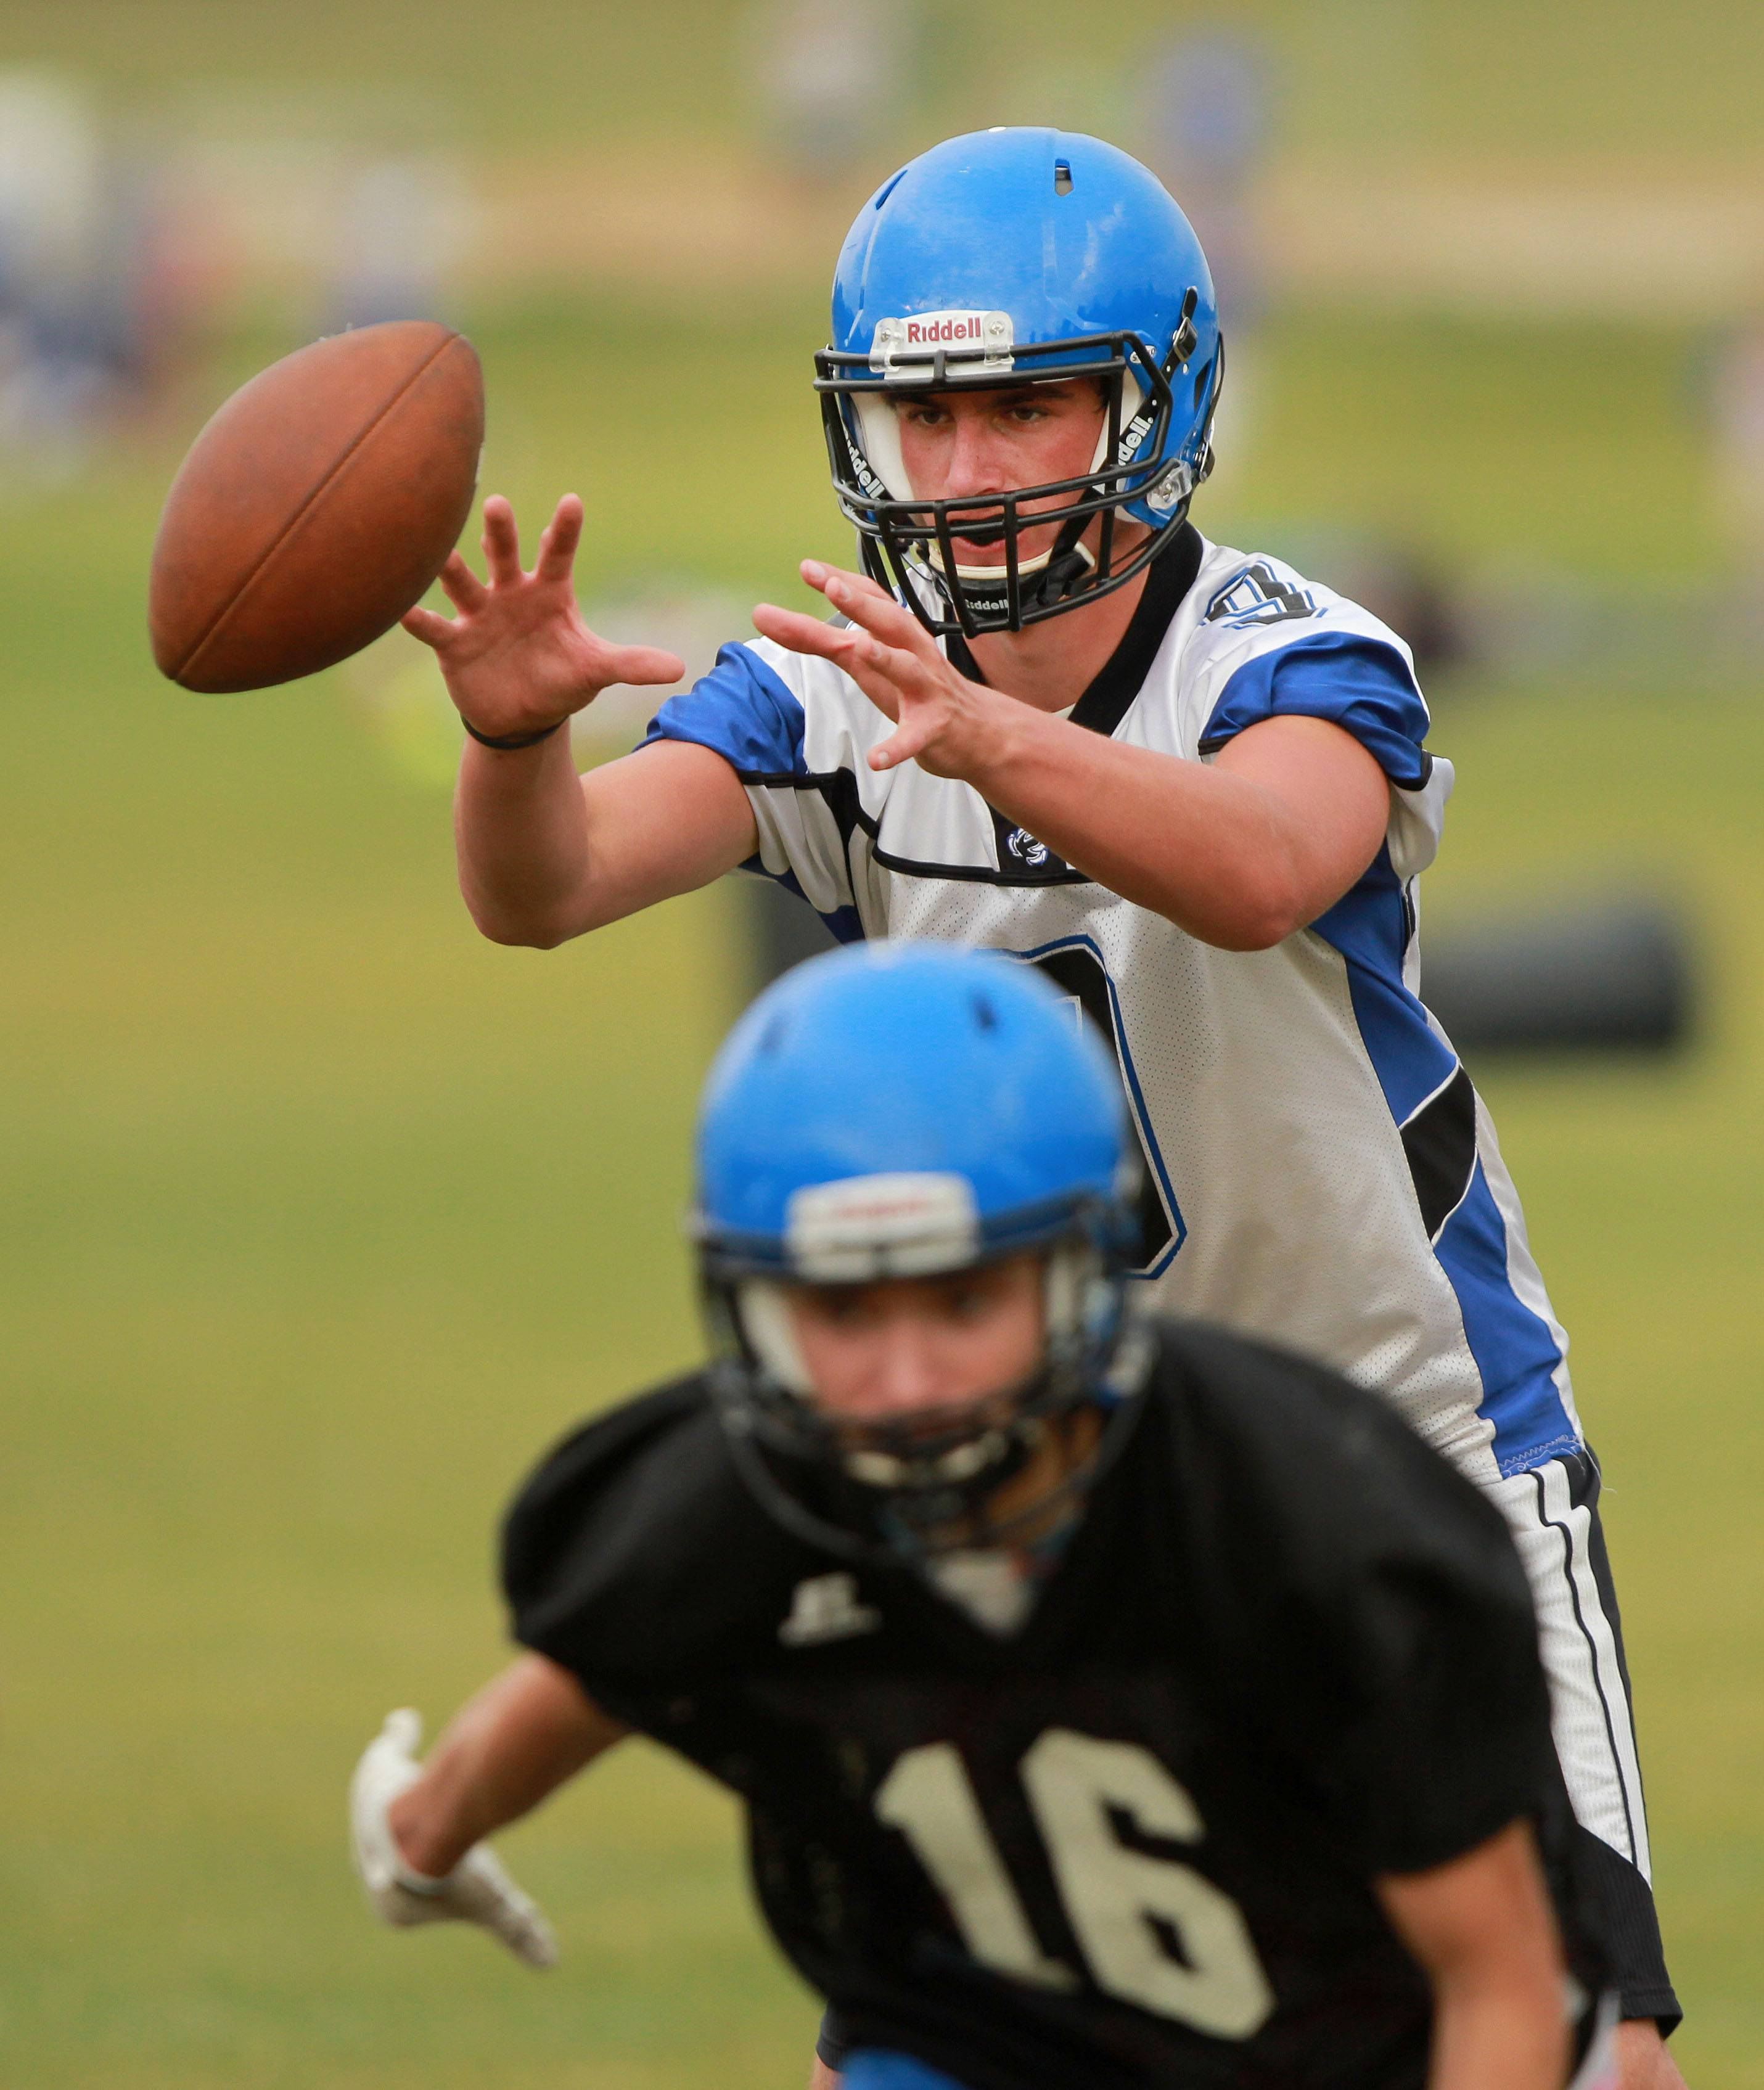 Quarterback Joey Lindstrom receives a snap during football practice Monday at Lake Zurich High School.